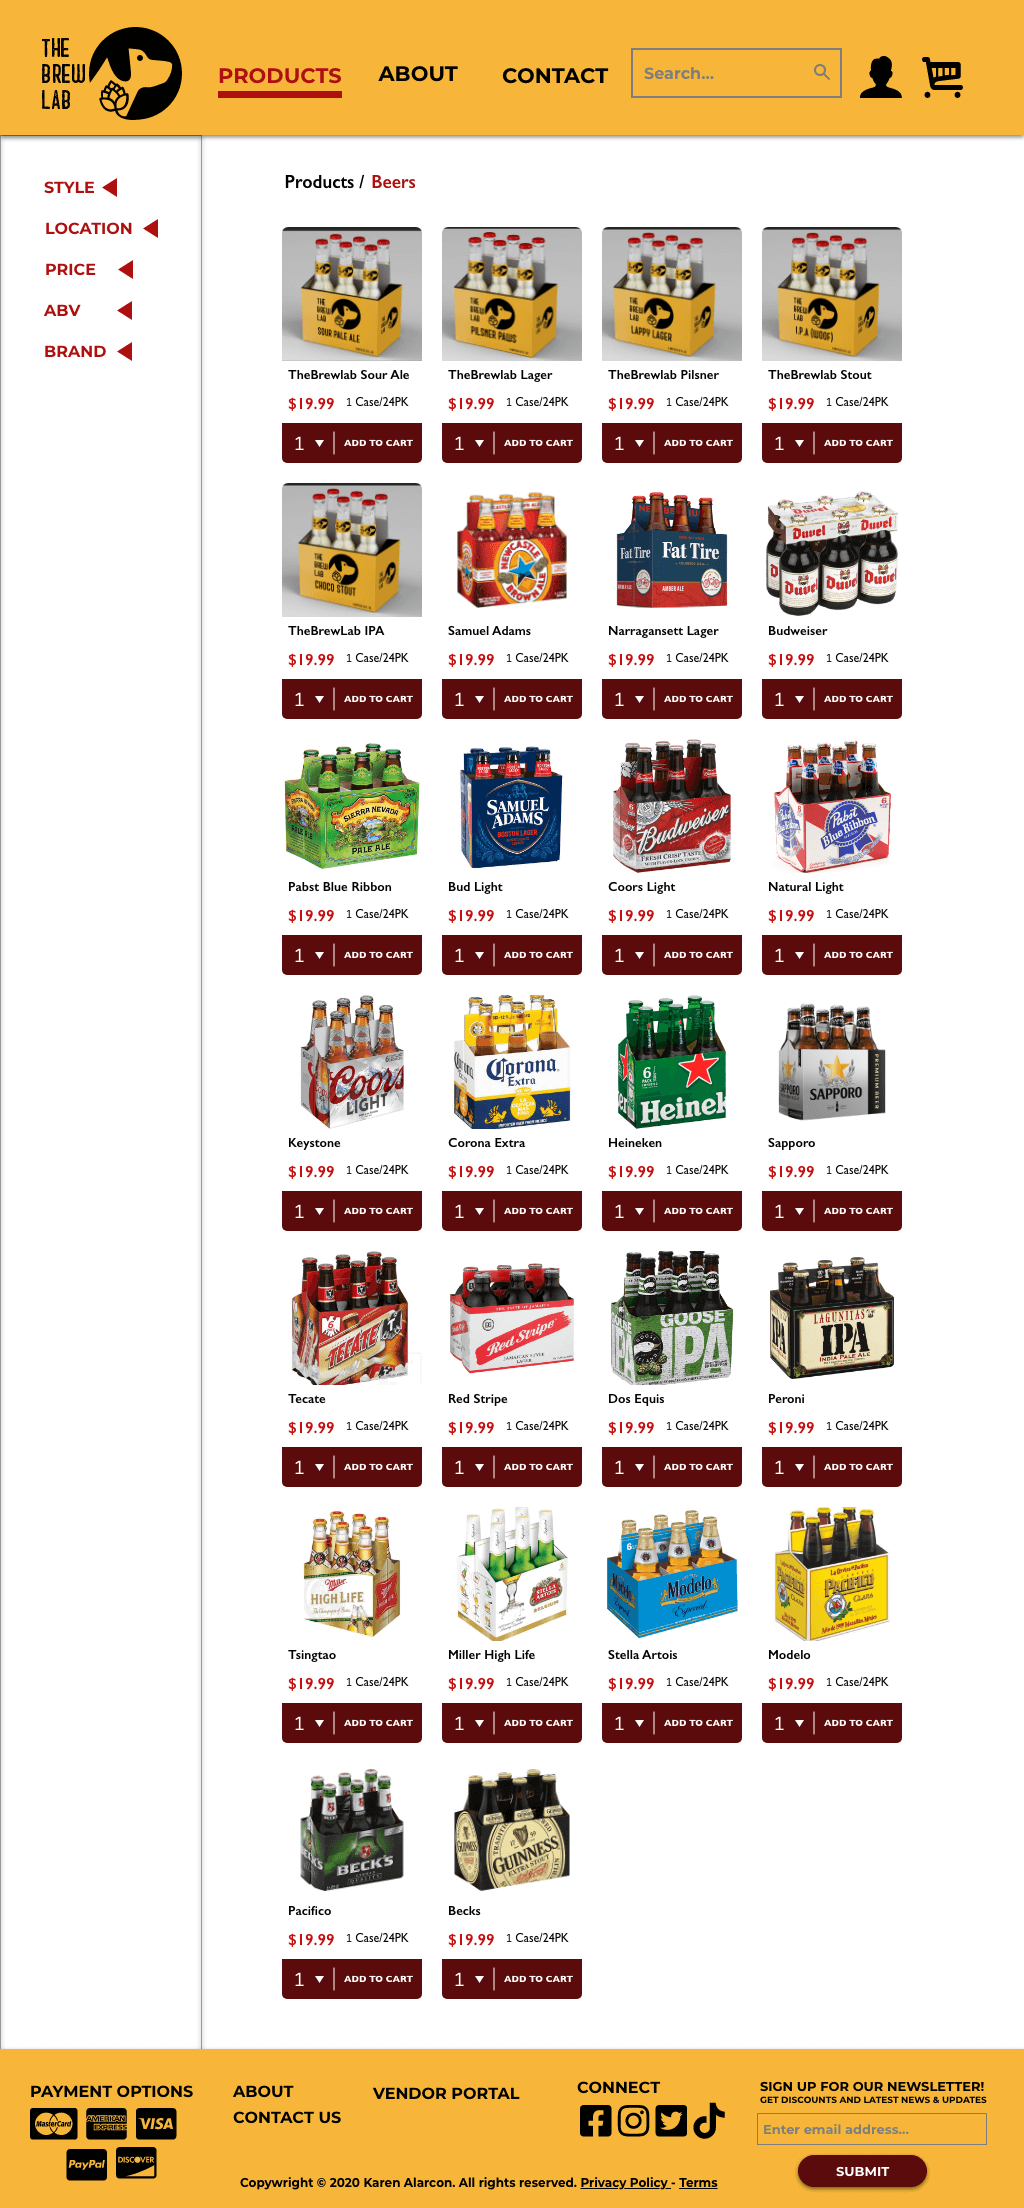 TBL Product Page List - All Beers